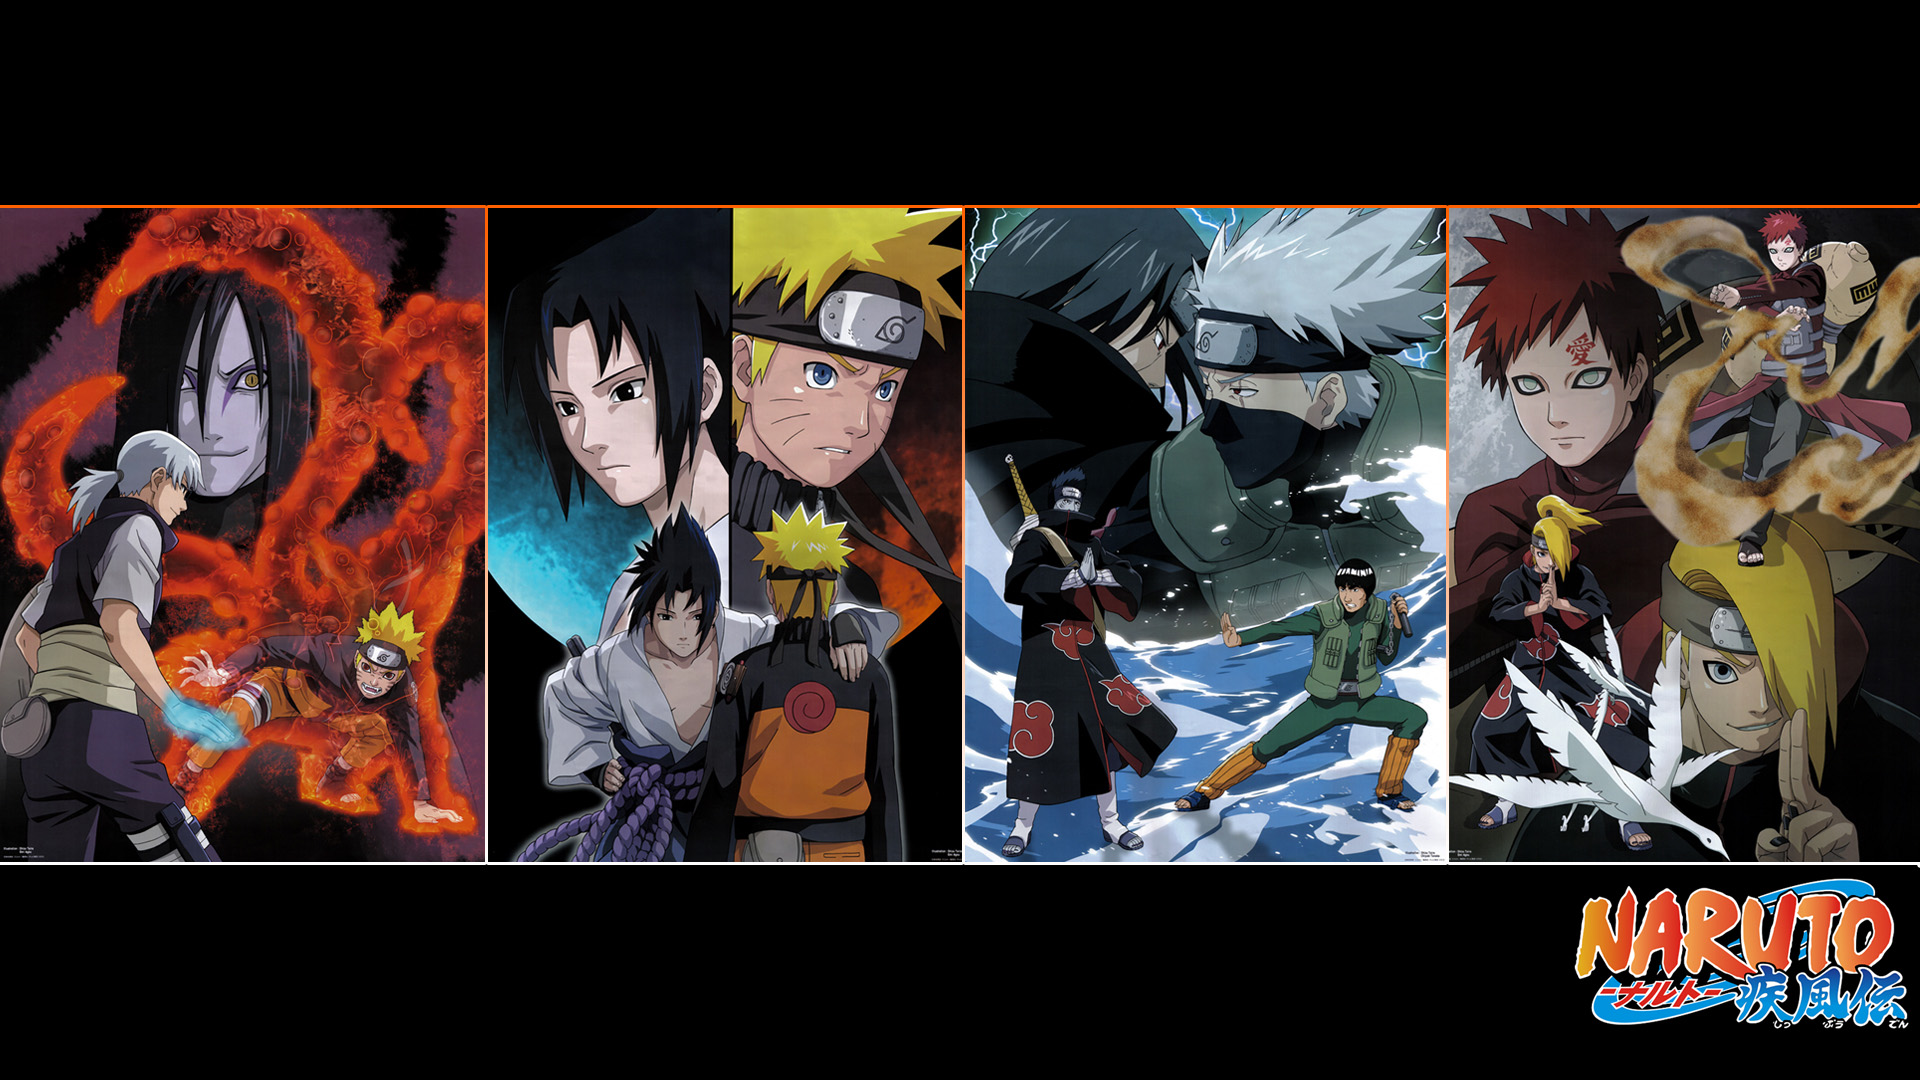 Naruto 1920x1080 Wallpaper